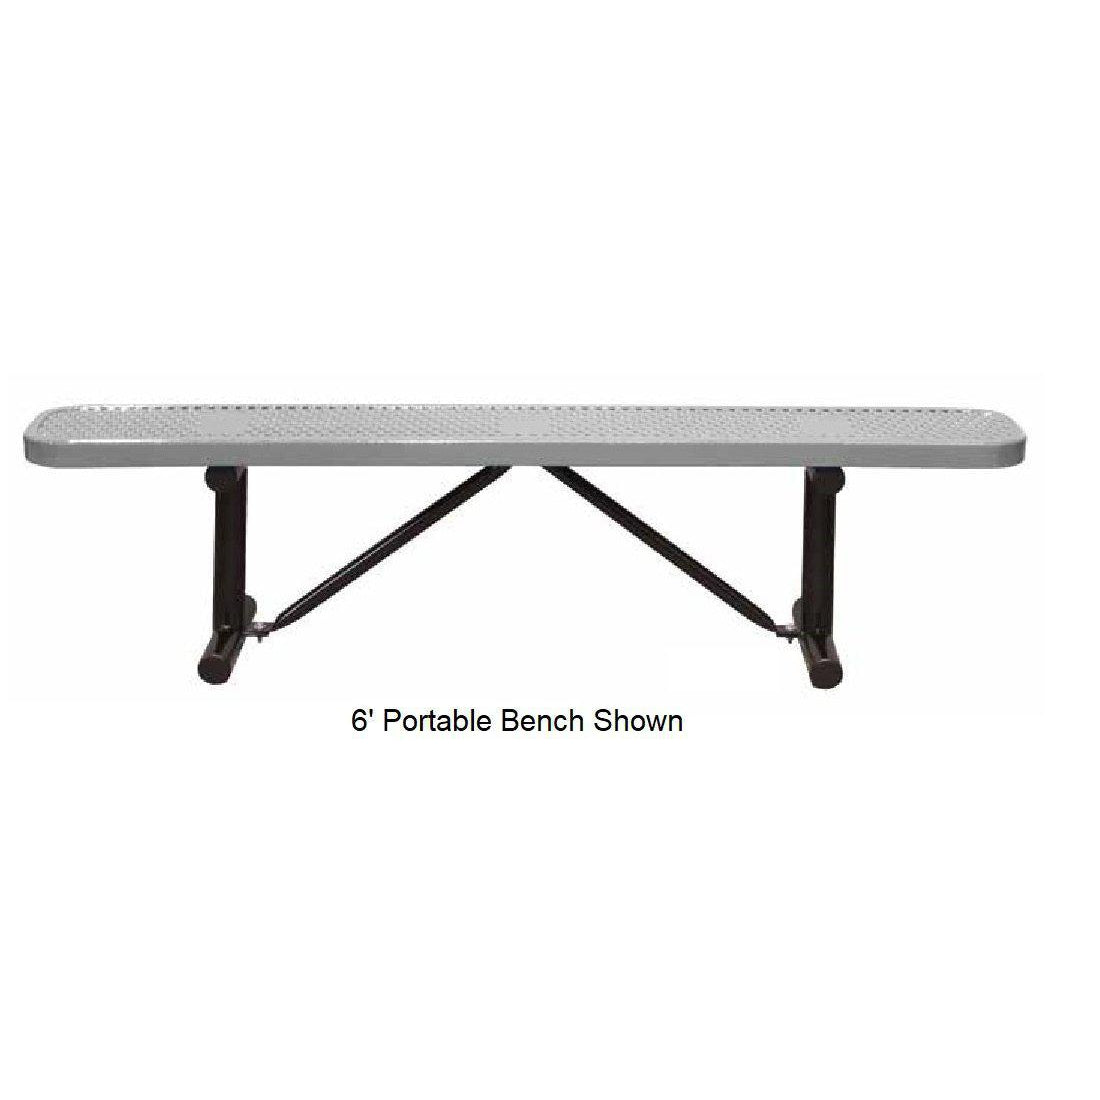 4' Standard Perforated Bench Without Back, Portable